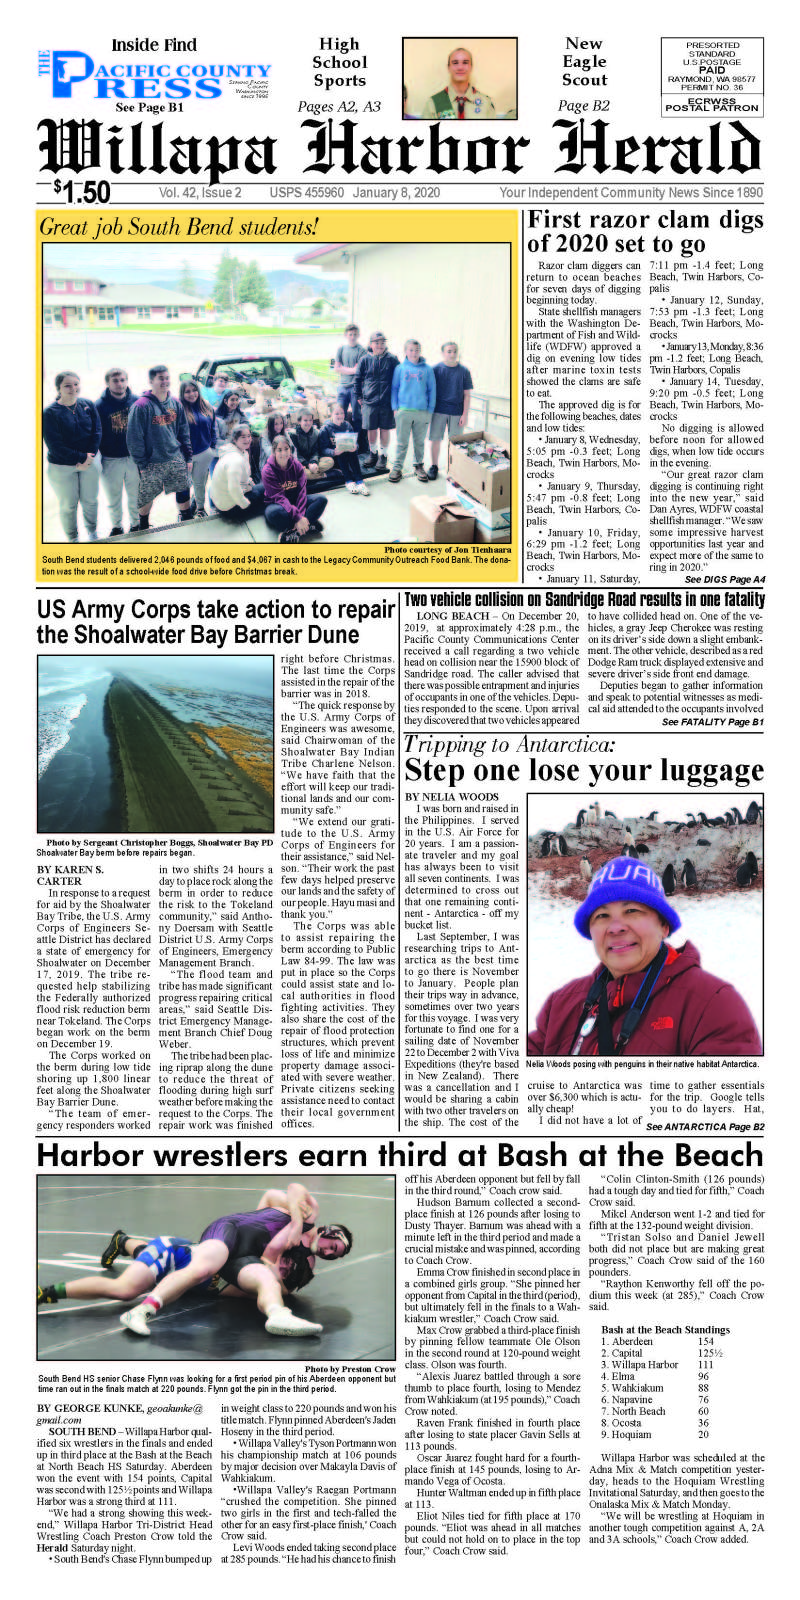 January 8, 2020 Willapa Harbor Herald and Pacific County Press